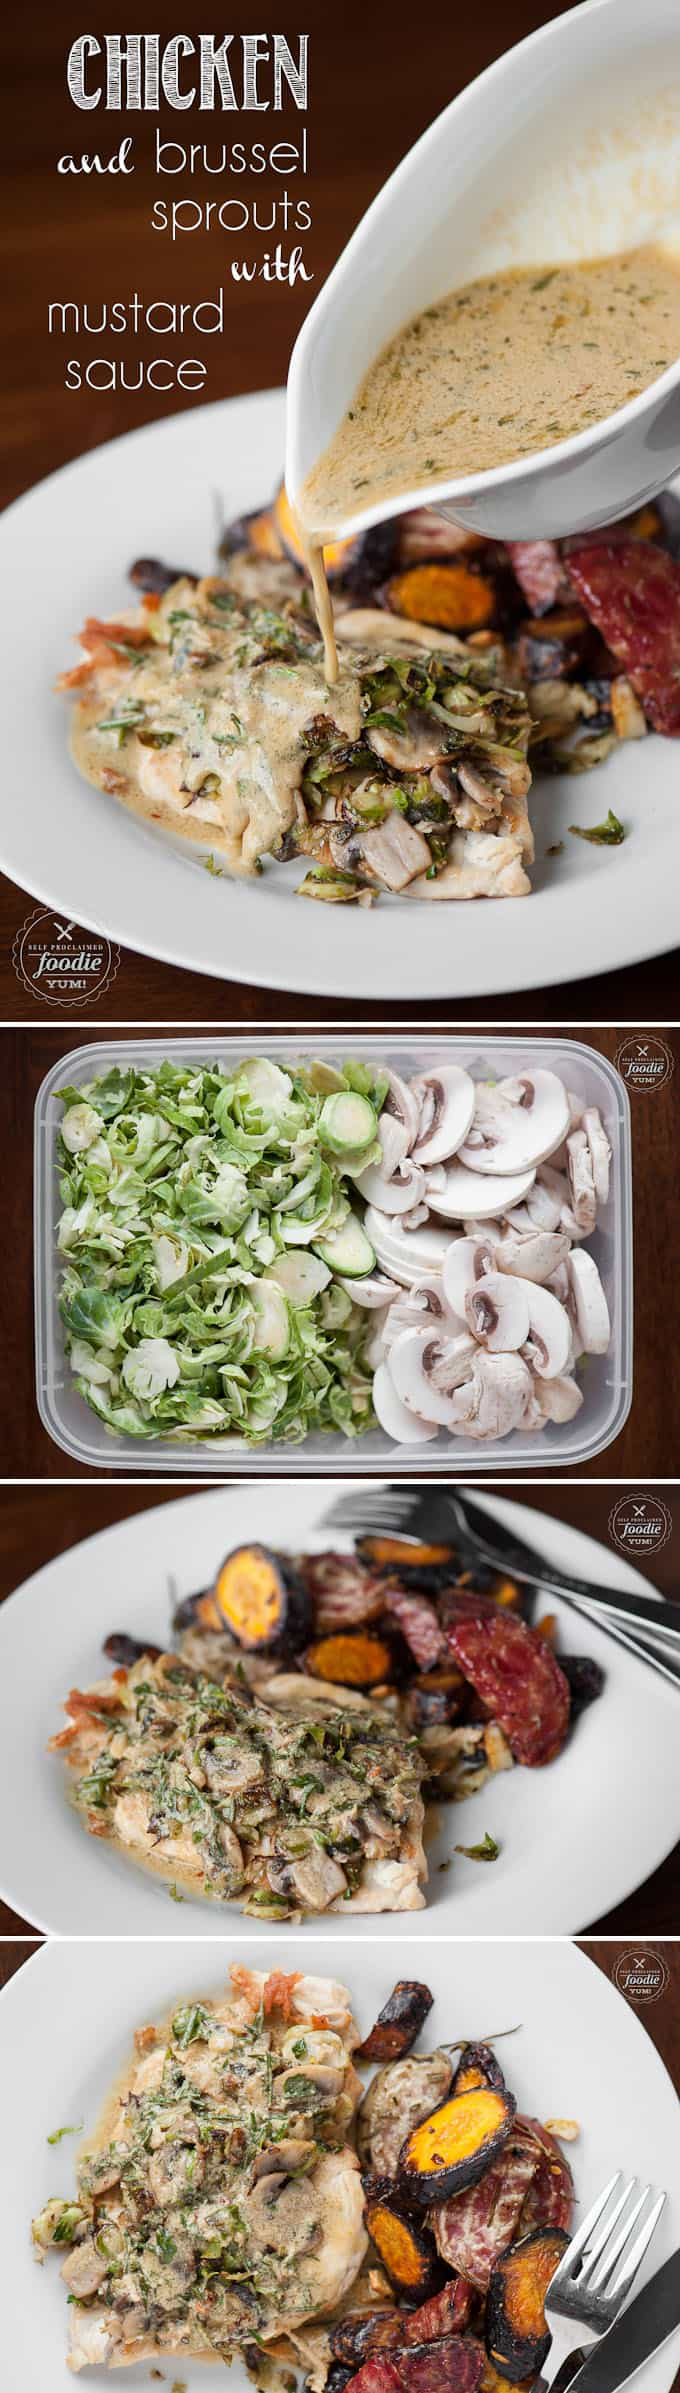 Chicken and Brussel Sprouts with Mustard Sauce is a healthy and low carb meal option that pairs an easy chicken dinner idea with sauteed brussel sprouts.